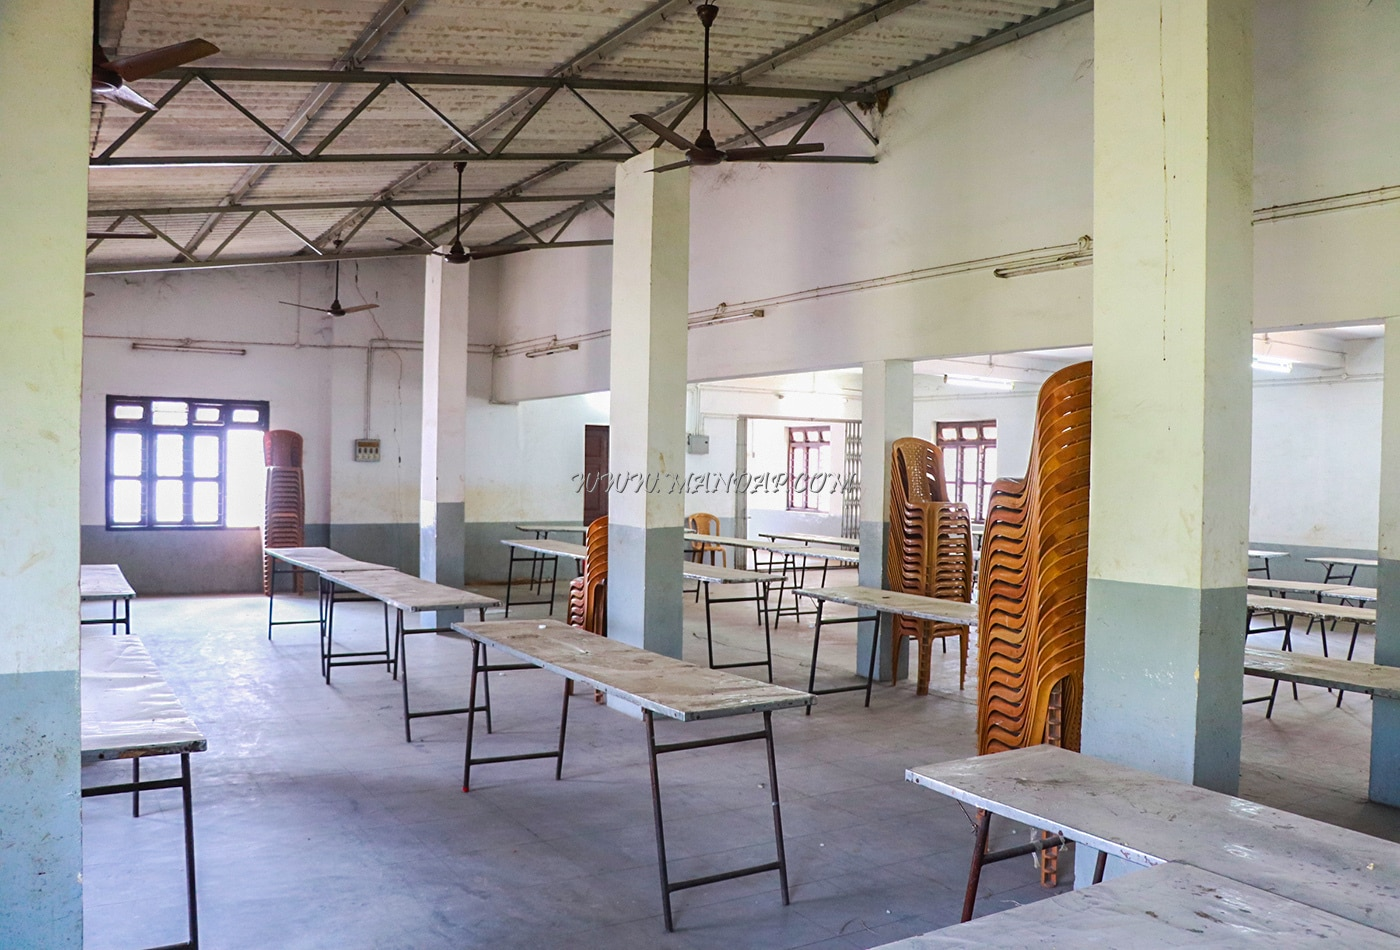 Find the availability of the NMR Hall in Palakkad Town, Palakkad and avail special offers